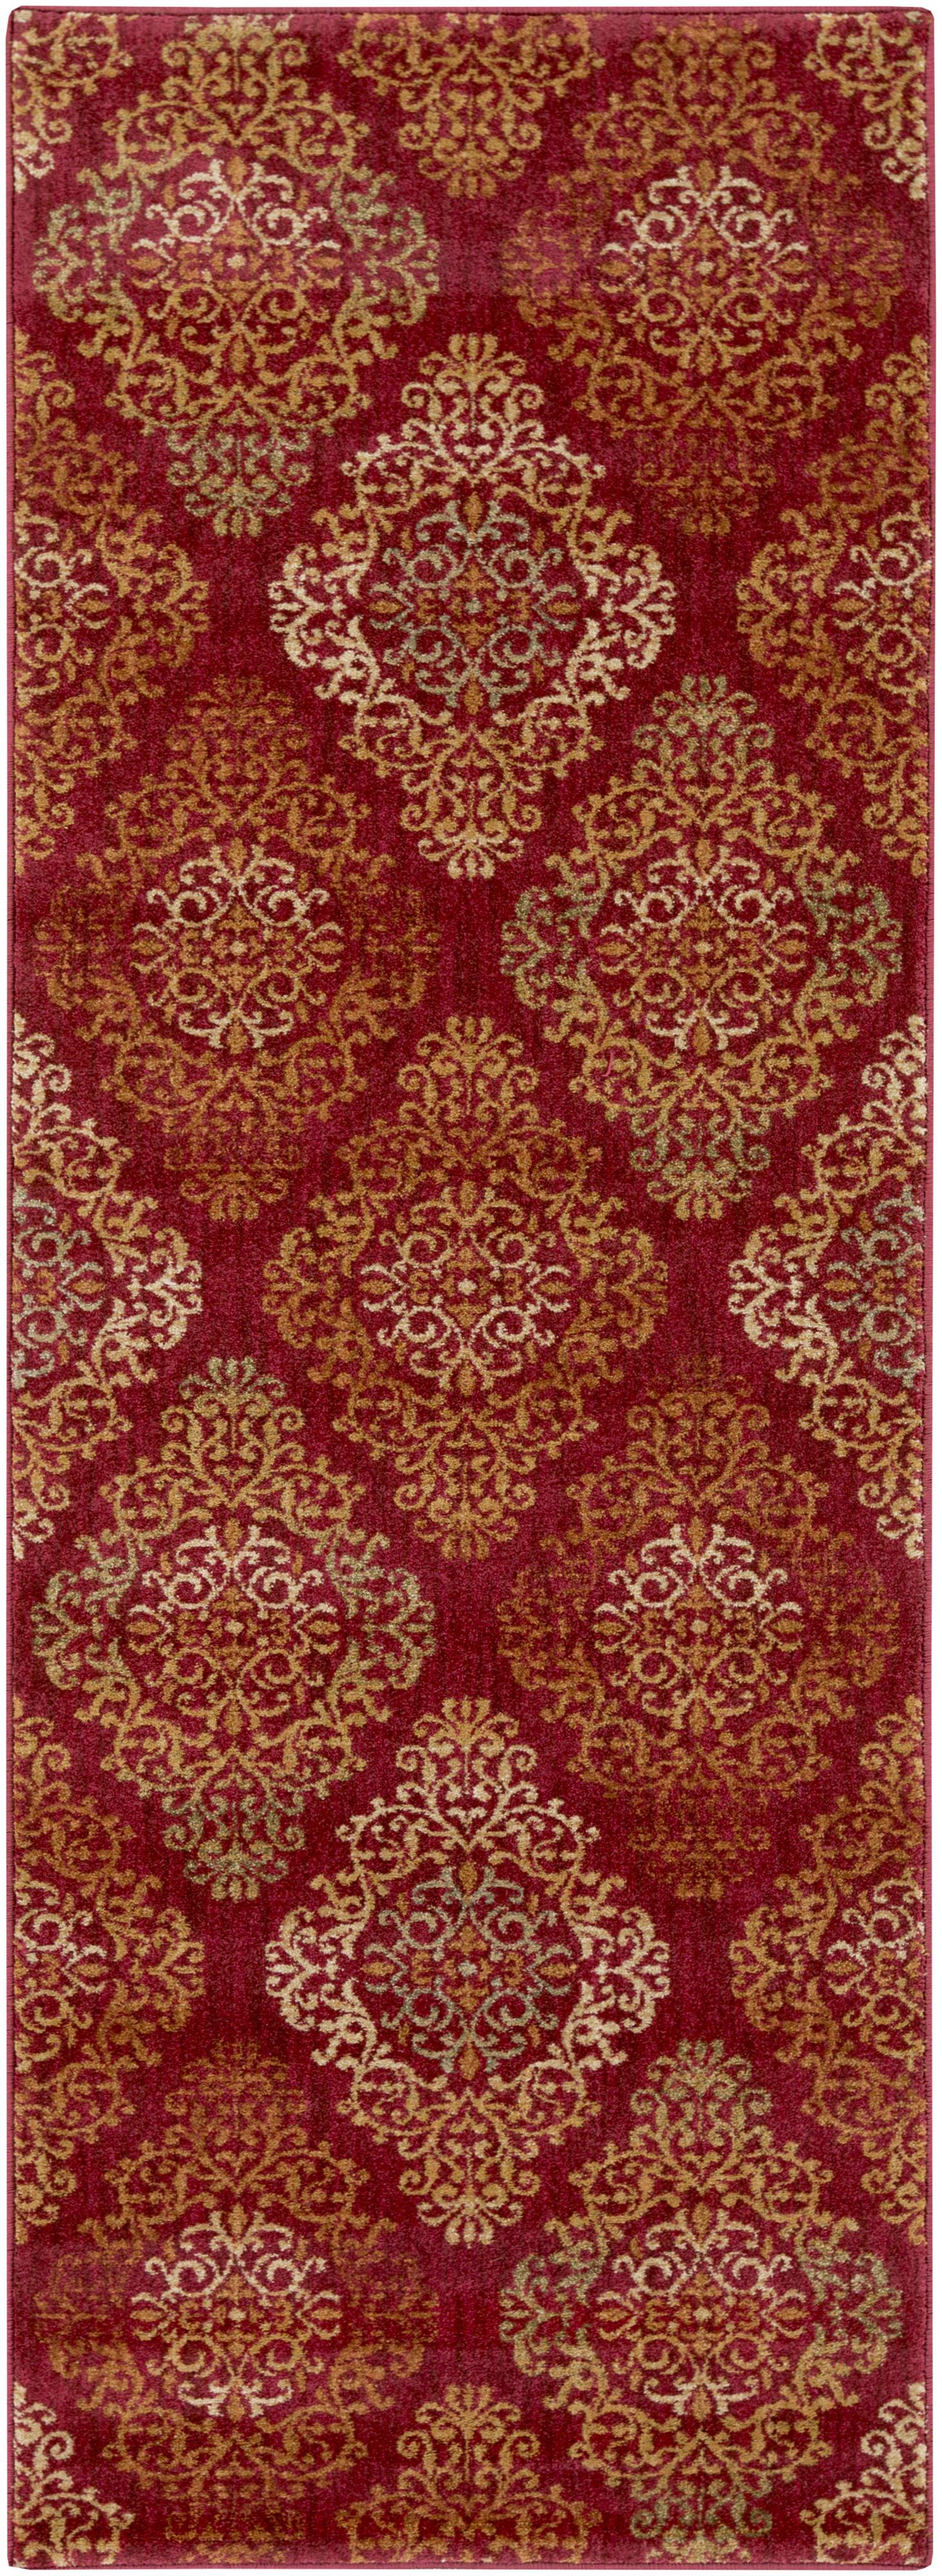 "Surya Arabesque 2'7"" x 7'3"" - Item Number: ABS3014-2773"